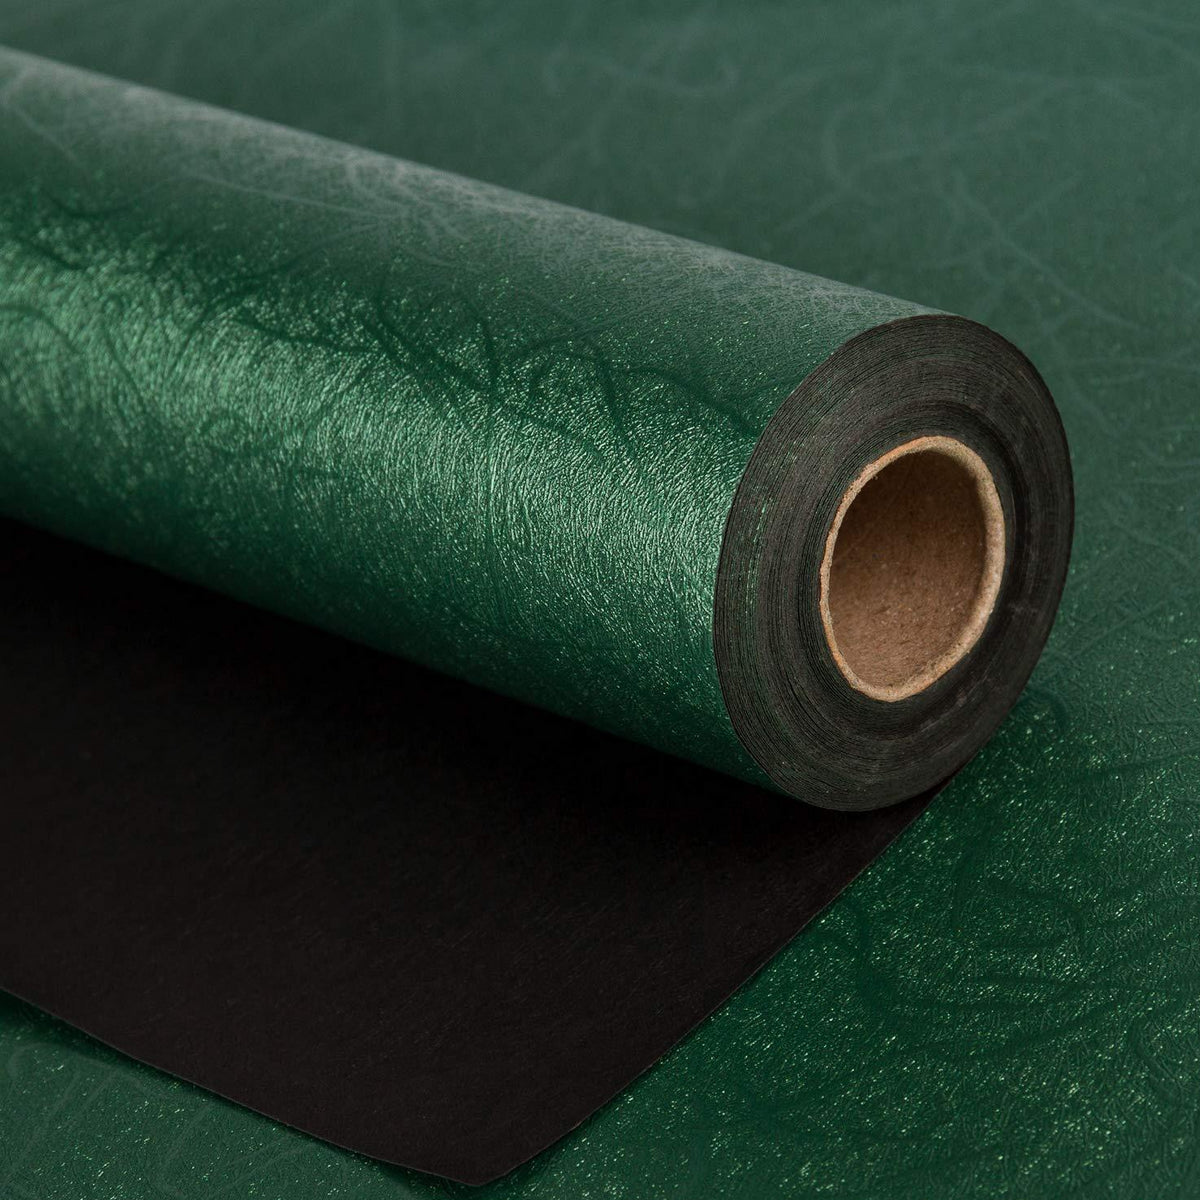 WRAPAHOLIC-Jewelry-Green-Gift-Wrapping-Paper-Dark-Green-Silking-Grain-1